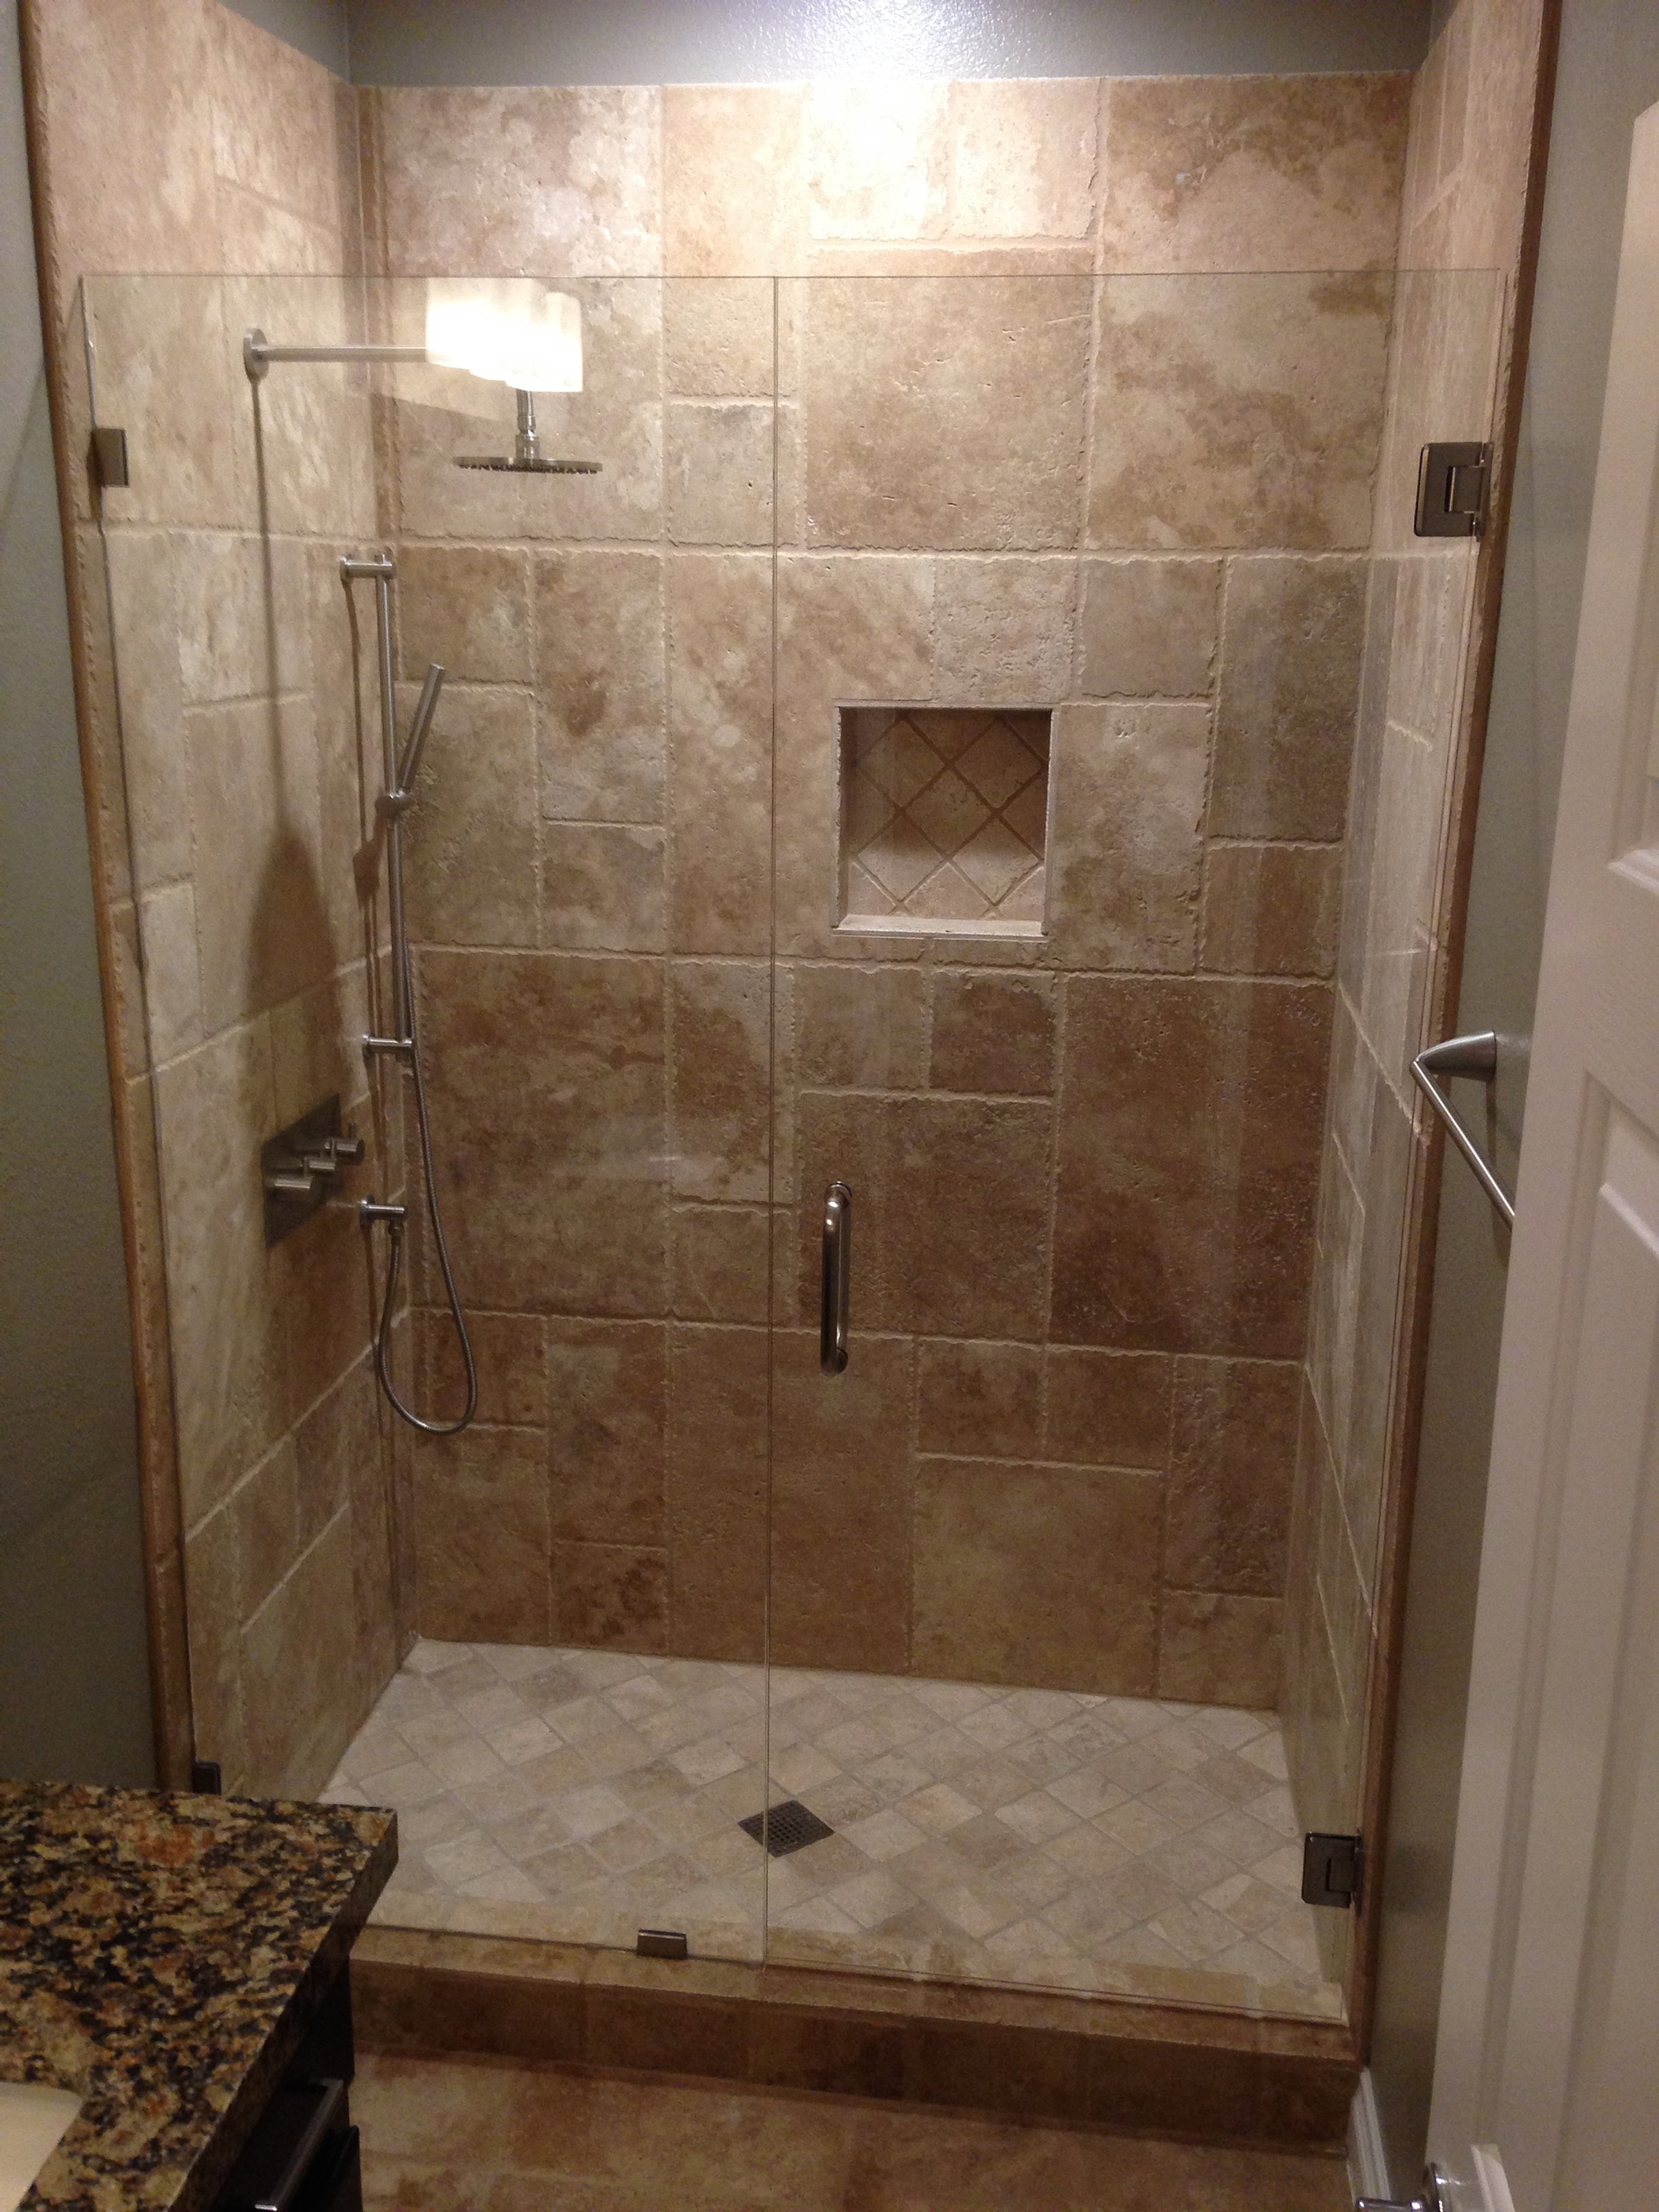 scottsdale shower enclosures scottsdale shower enclosures from bathroom remodel las vegas image source acutaboveglasscom